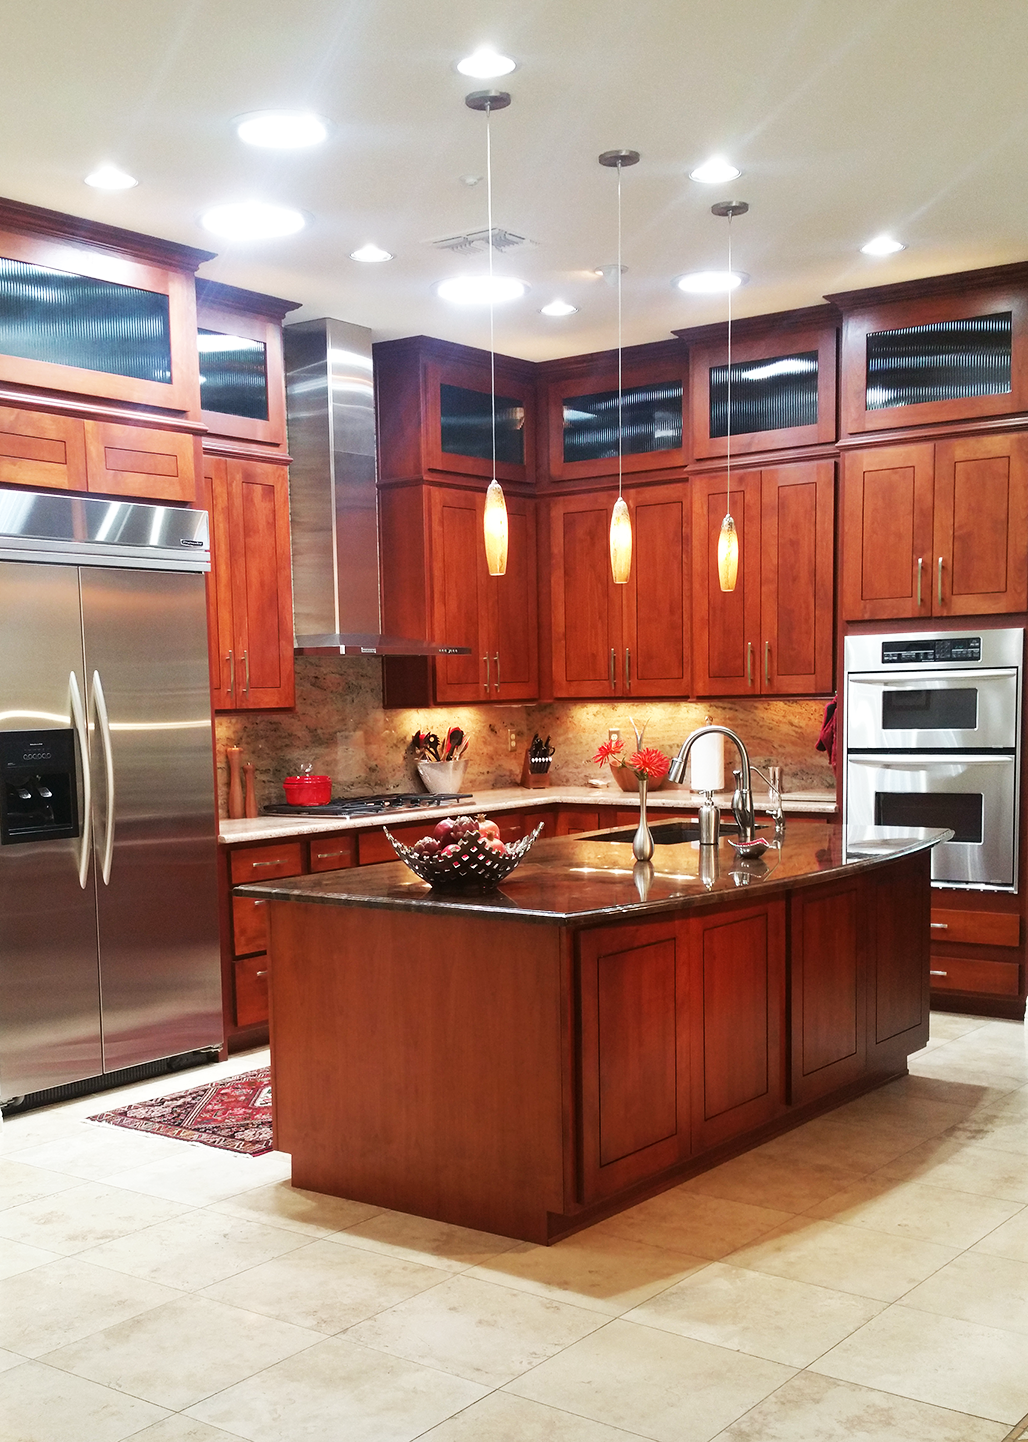 Options And Modifications Better Than New Kitchens